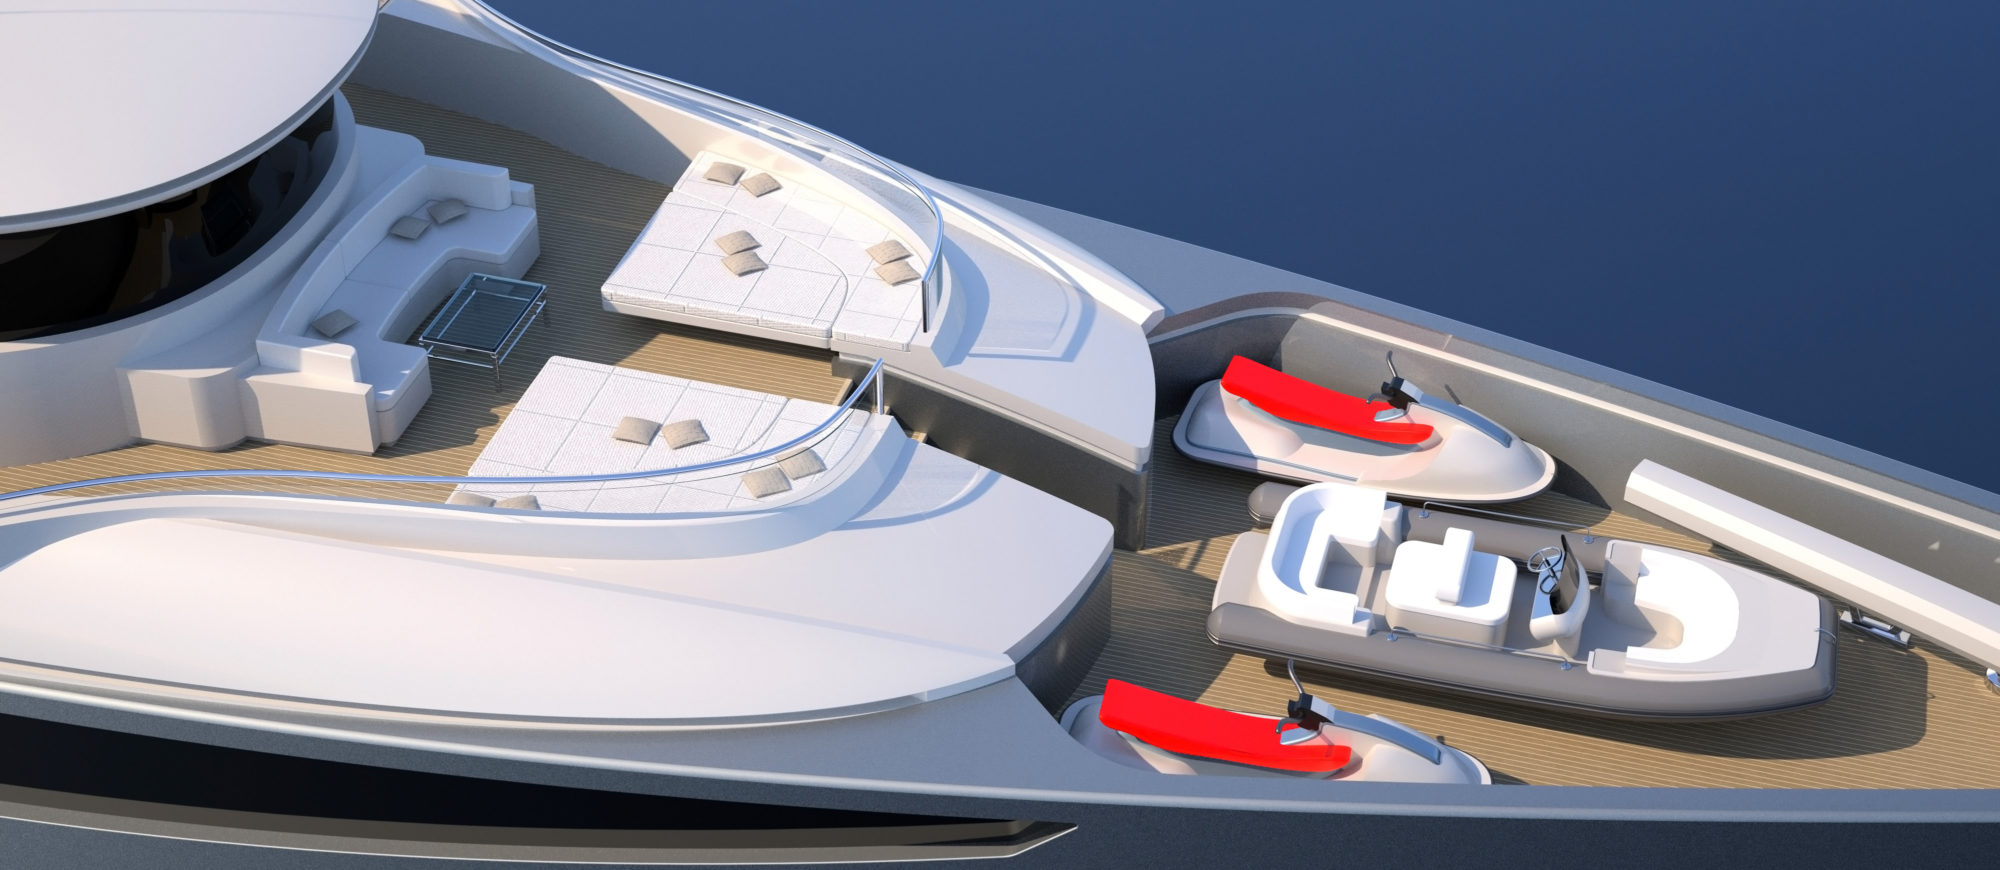 Conrad C166 Superyacht Concept Vallicelli Visualisation Bridge Deck 2